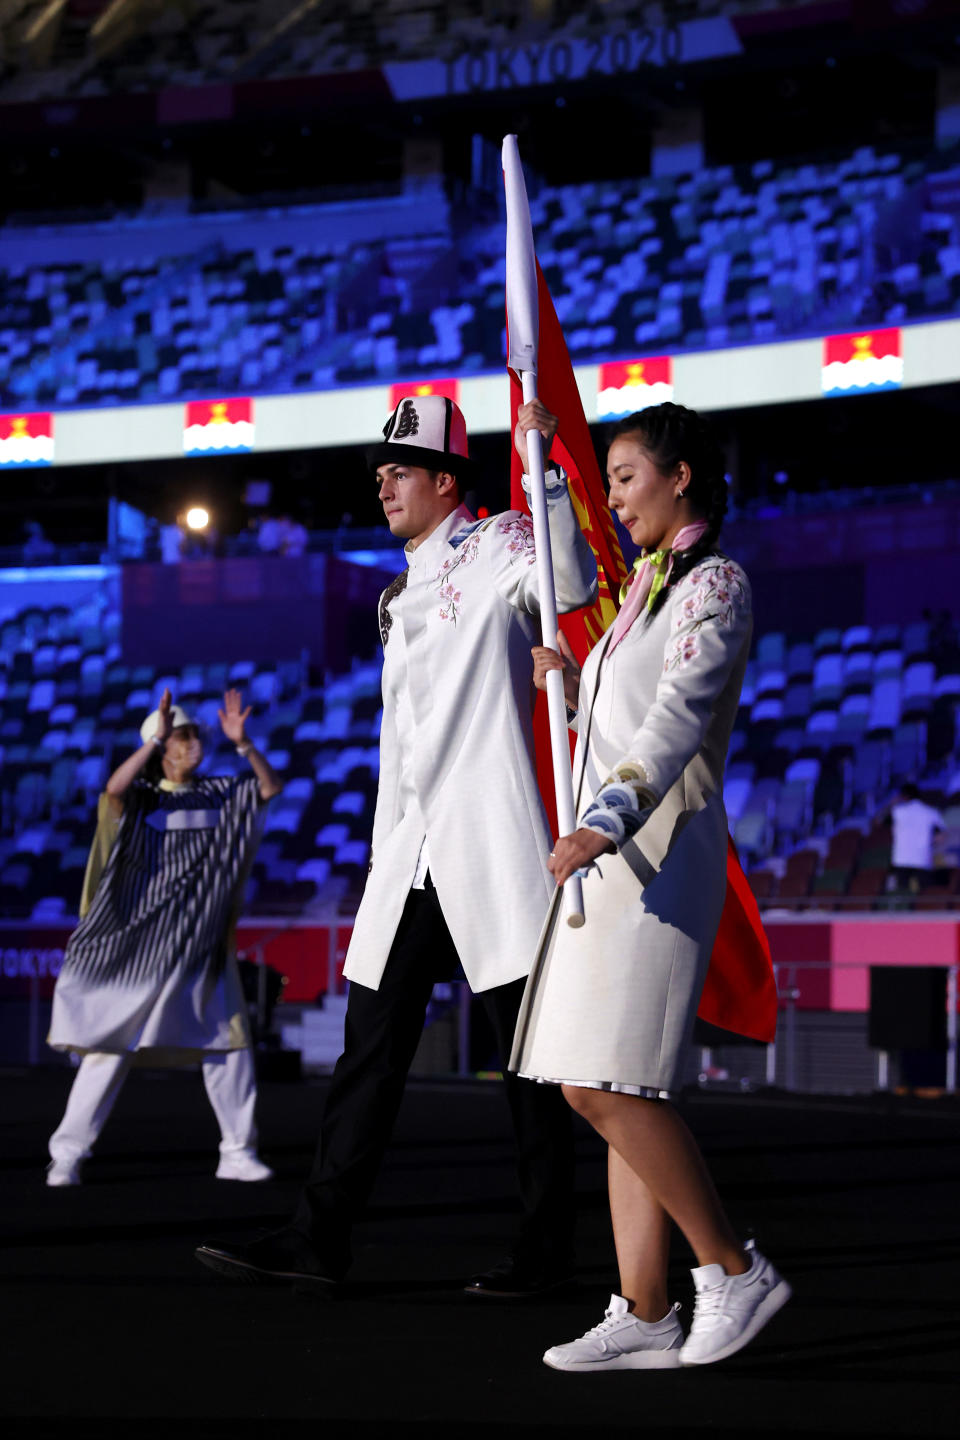 TOKYO, JAPAN - JULY 23: Flag bearers Kanykei Kubanychbekova and Denis Petrashov of Team Kyrgyzstan during the Opening Ceremony of the Tokyo 2020 Olympic Games at Olympic Stadium on July 23, 2021 in Tokyo, Japan. (Photo by Jamie Squire/Getty Images)